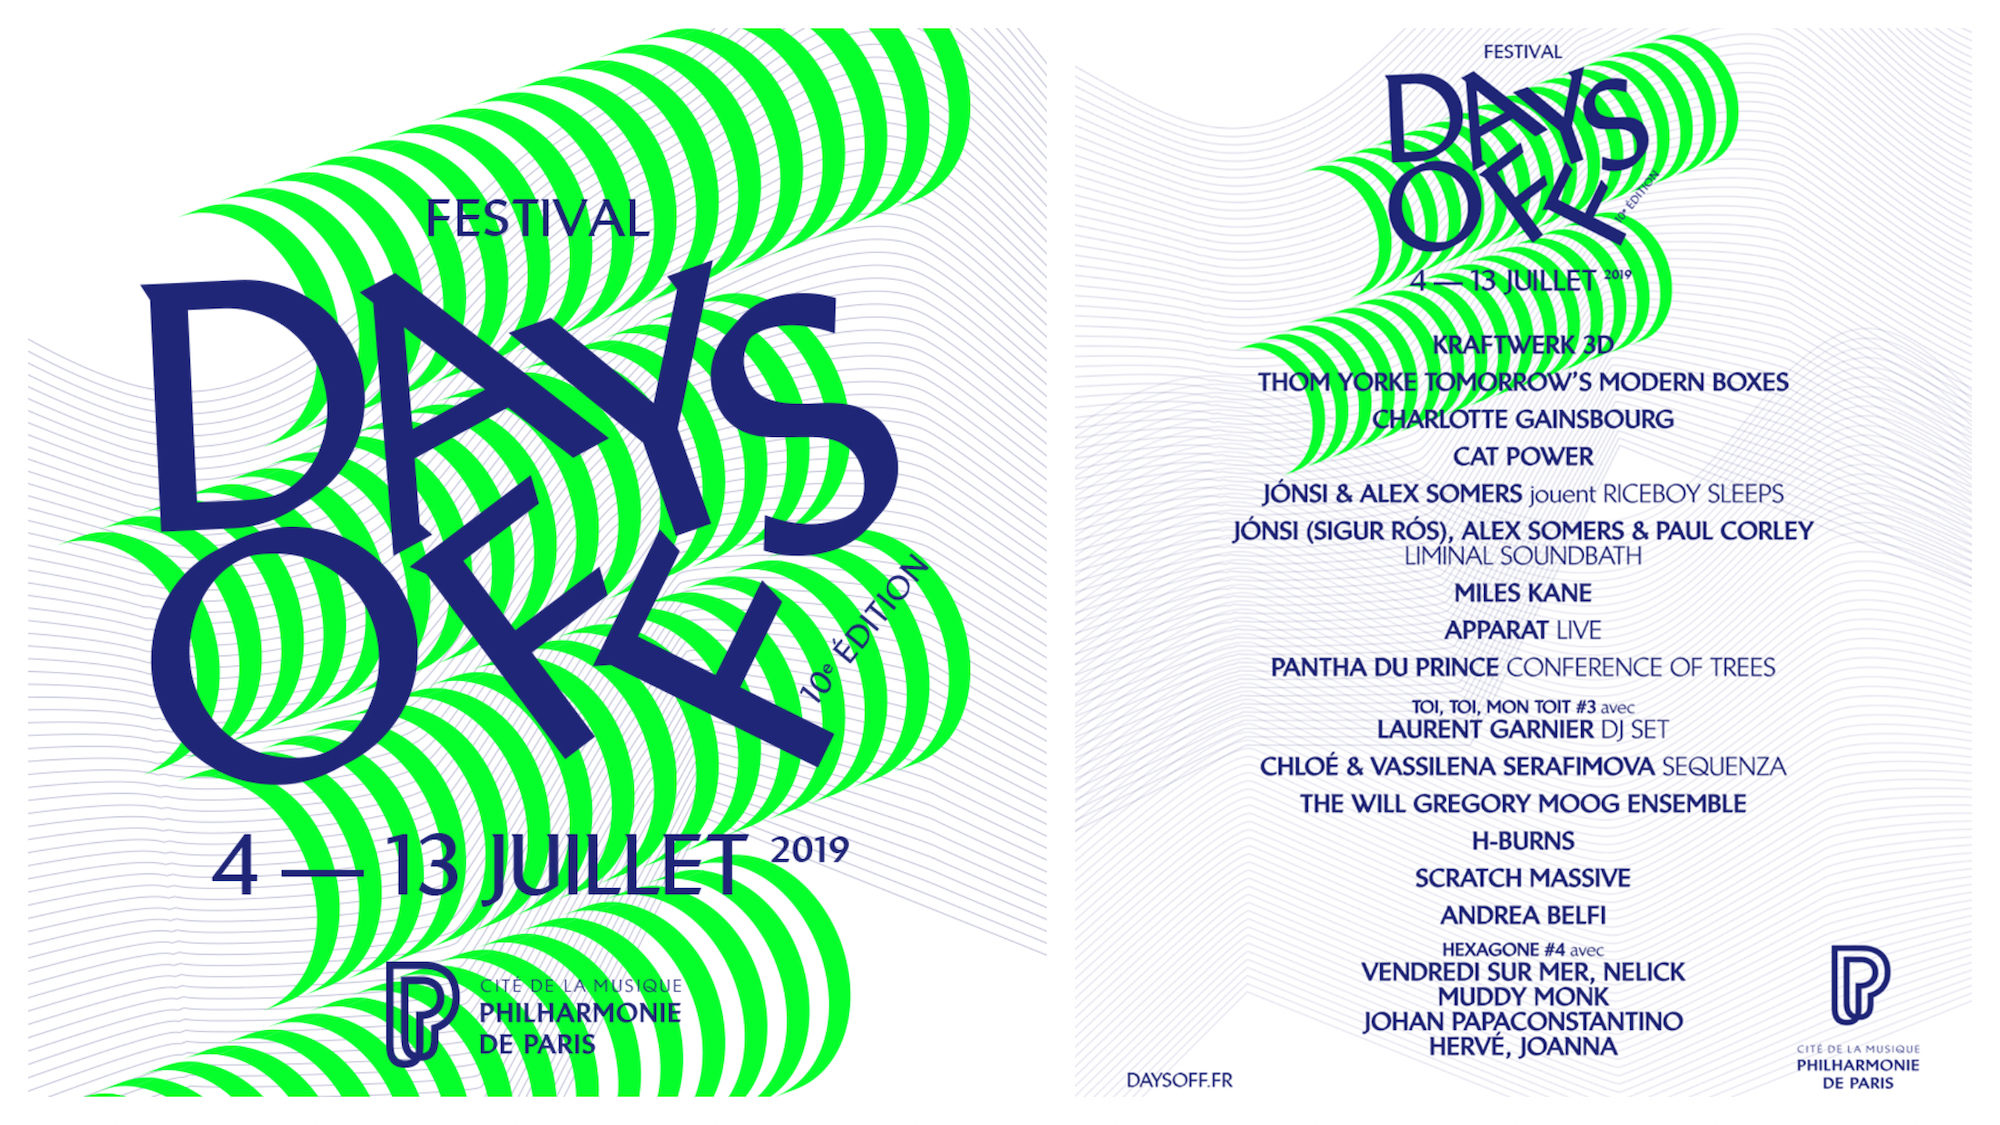 A flyer for Days Off festival at the Philharmonie de Paris.